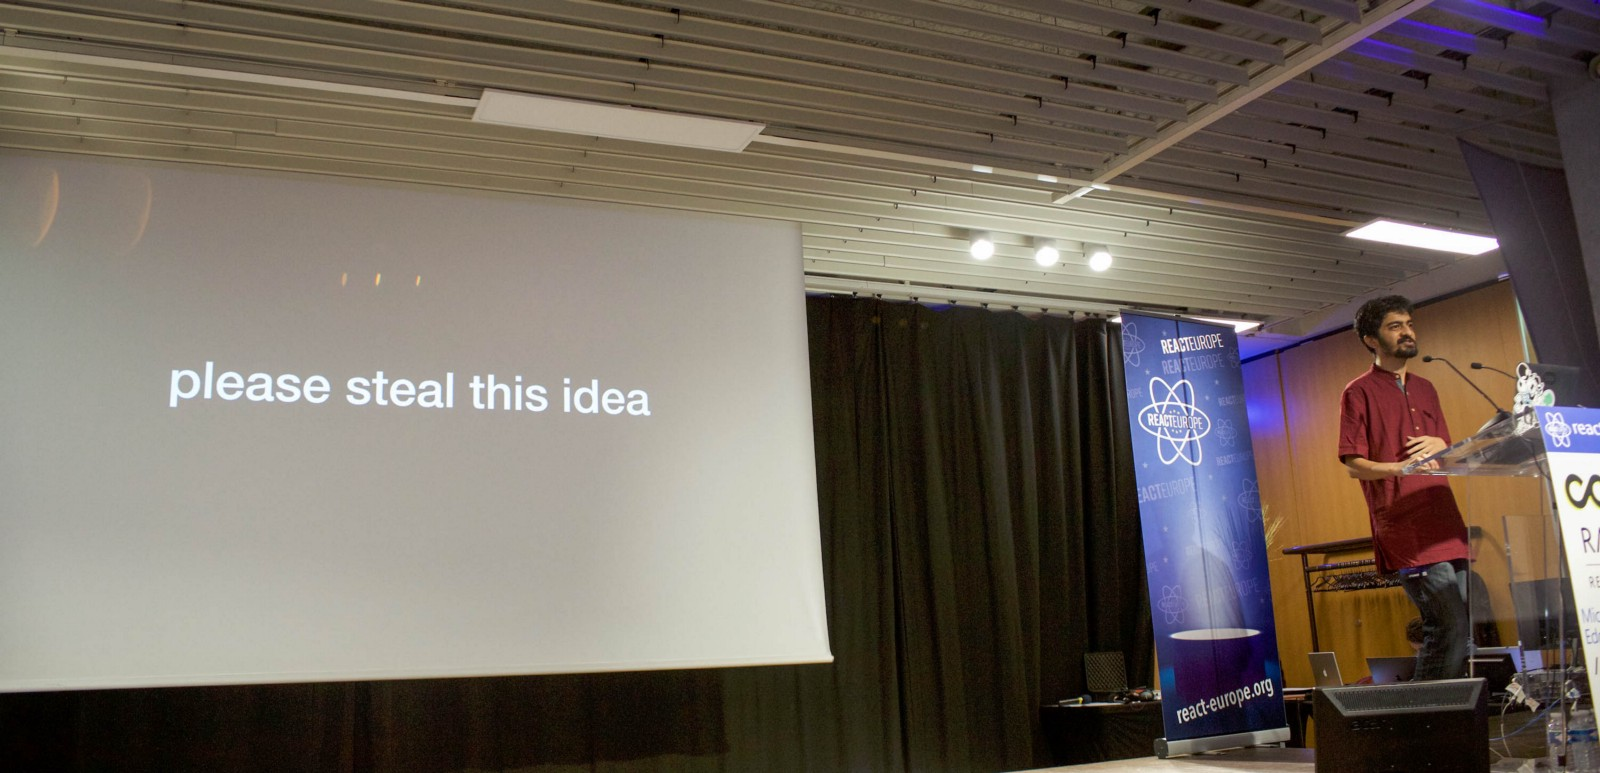 Sunil Pai with 'please steal this idea' on screen behind him - at ReactEurope 2018